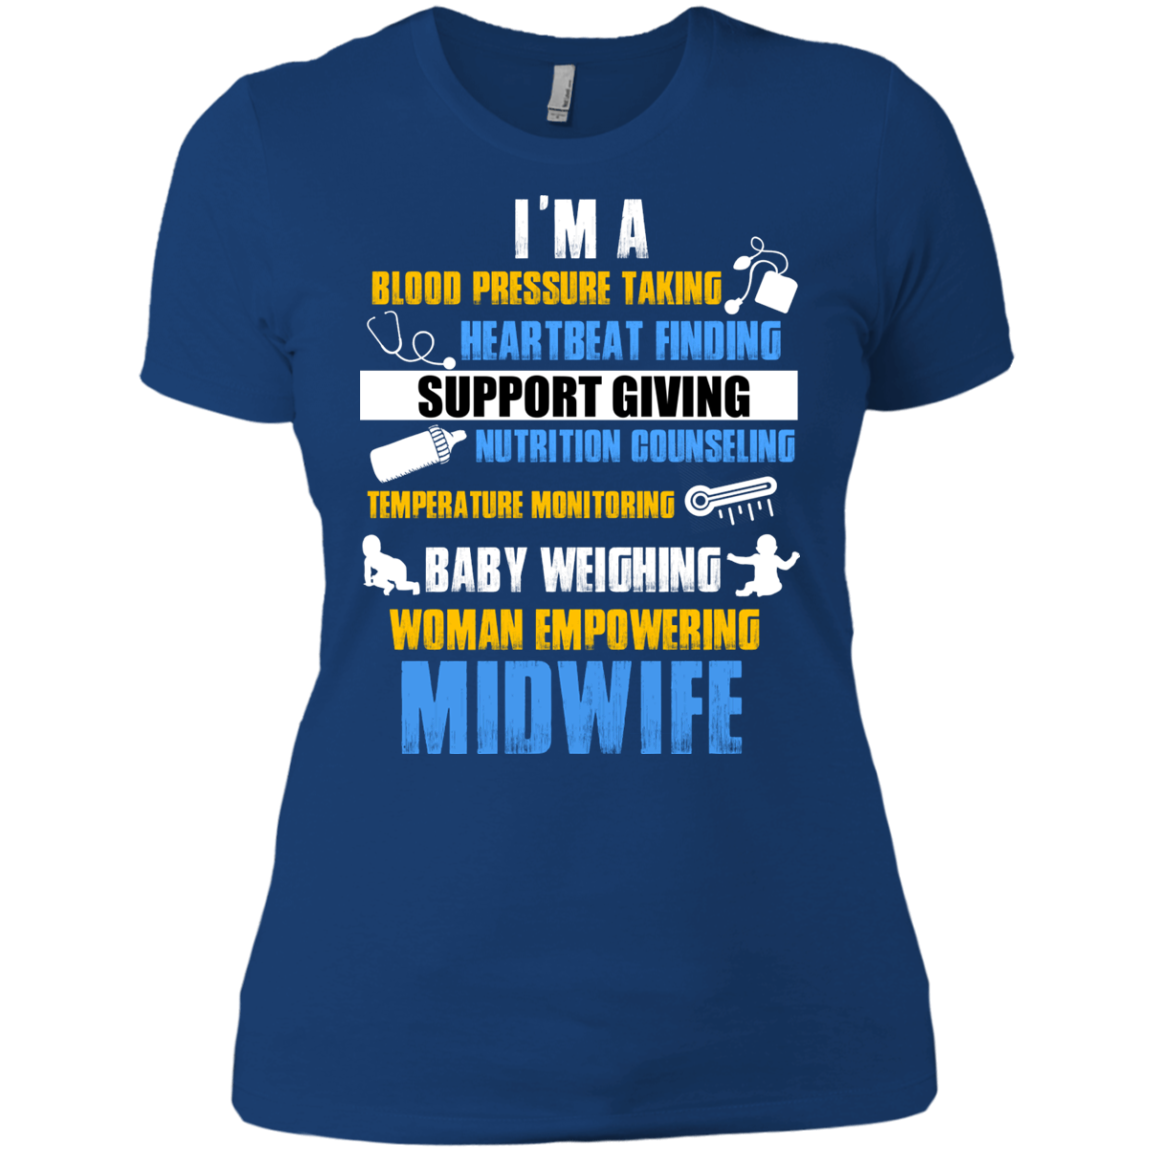 Baby Weighing Woman Empowering Midwife T-Shirt & Hoodie - The Sun Cat